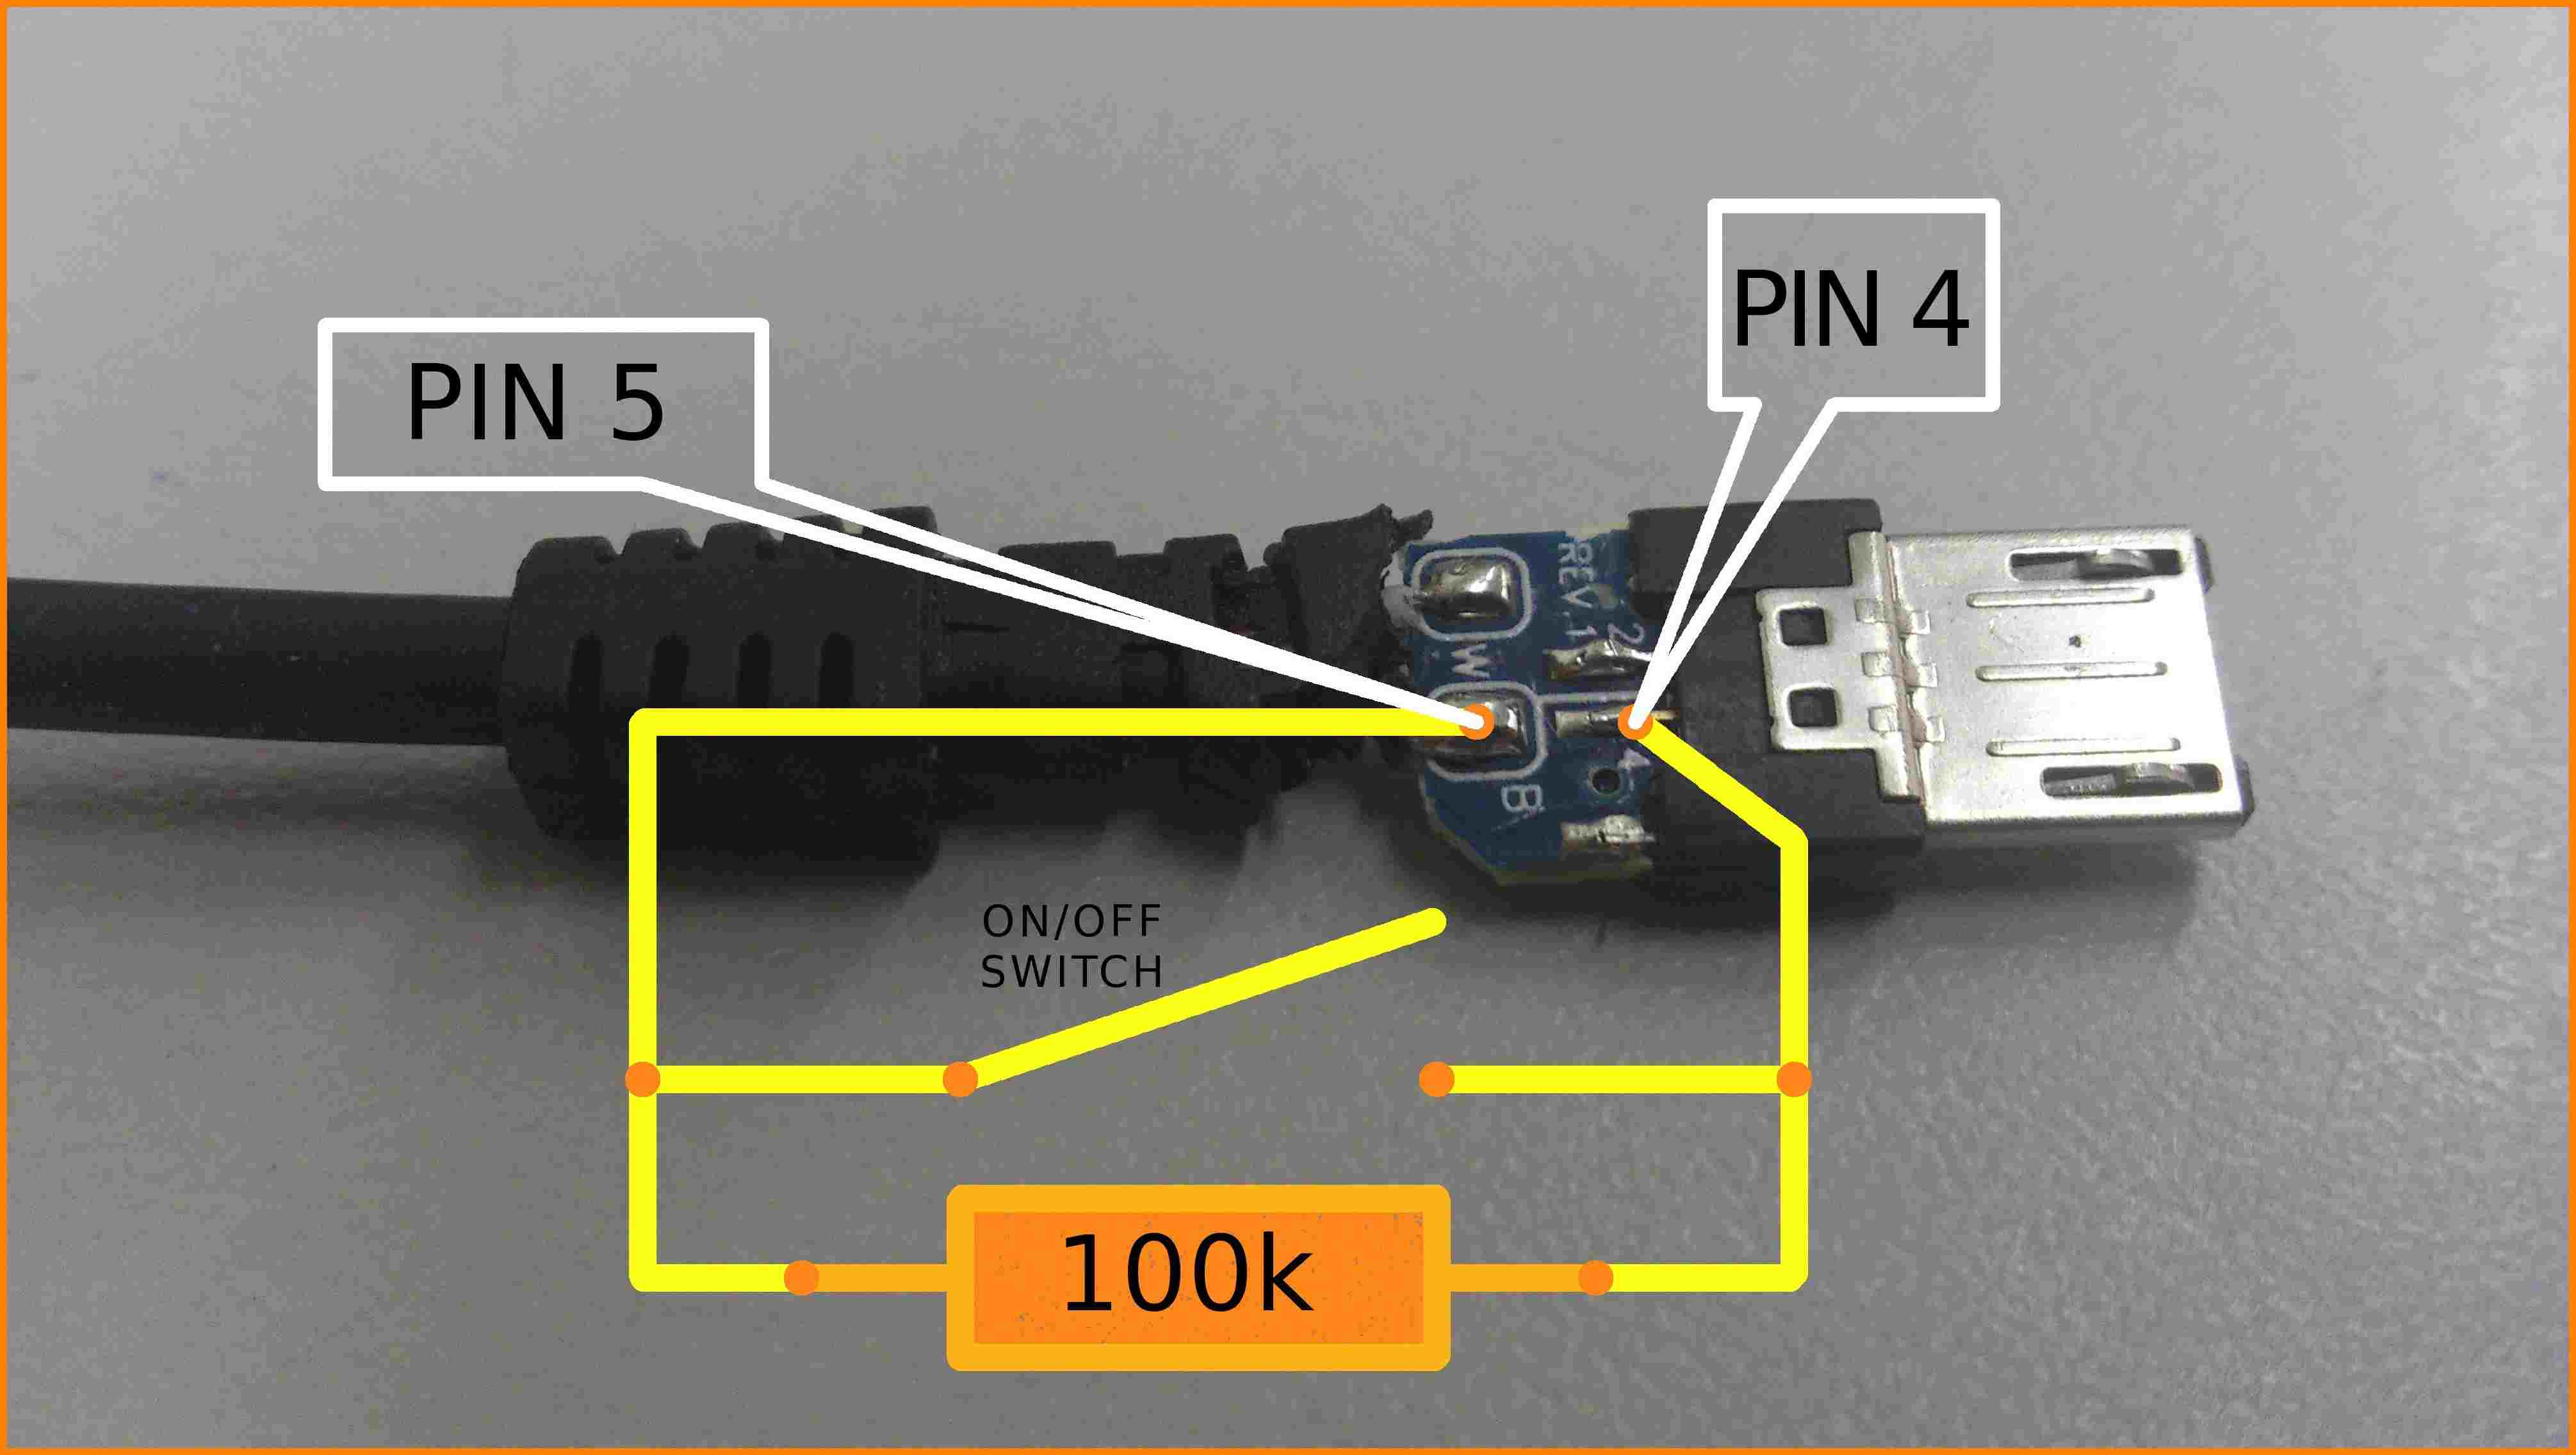 Phone Charger Wire Diagram | Wiring Library - Micro Usb Phone Charger Wiring Diagram